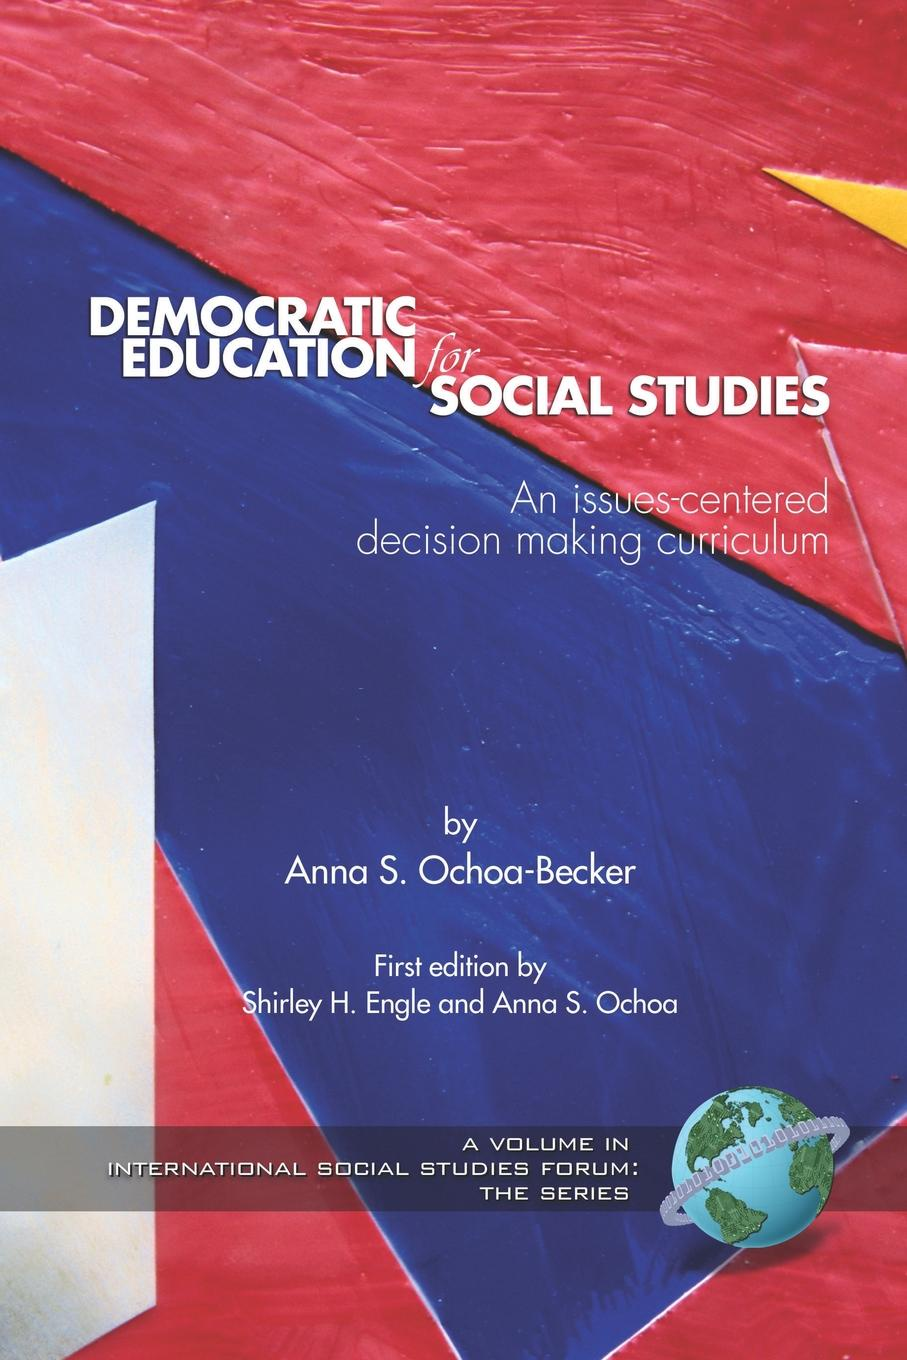 Фото - Democratic Education for Social Studies. An Issues-Centered Decision Making Curriculum (PB) sense of efficacy in implementing social studies curriculum